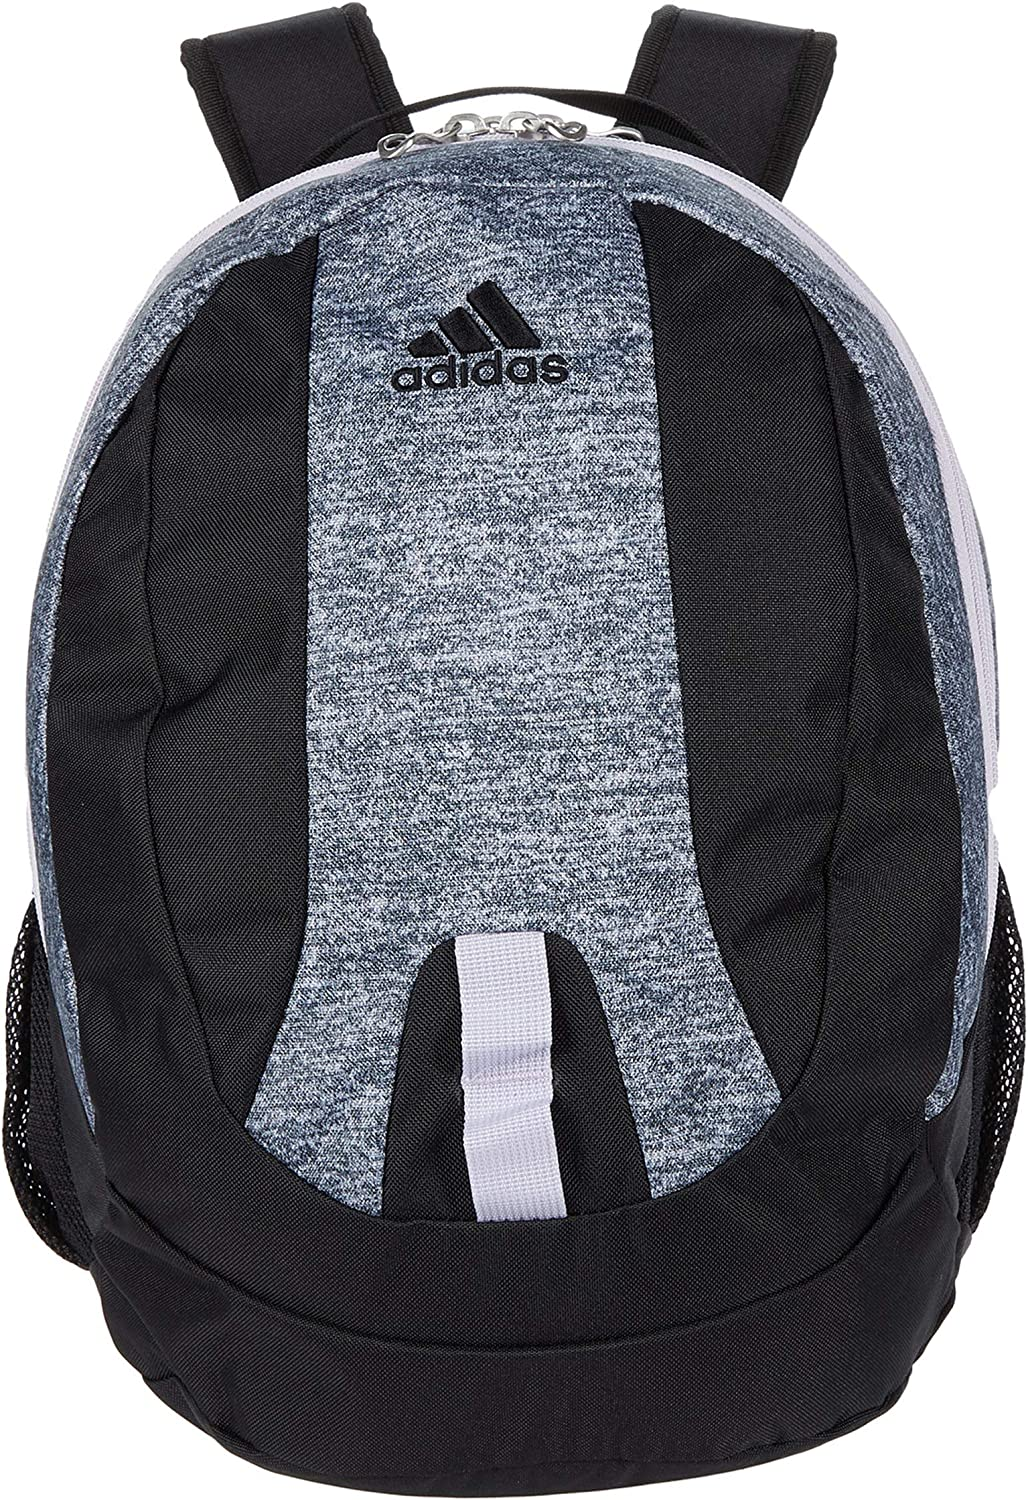 adidas Journal Backpack Jersey Onix/Black/Purple Tint One Size